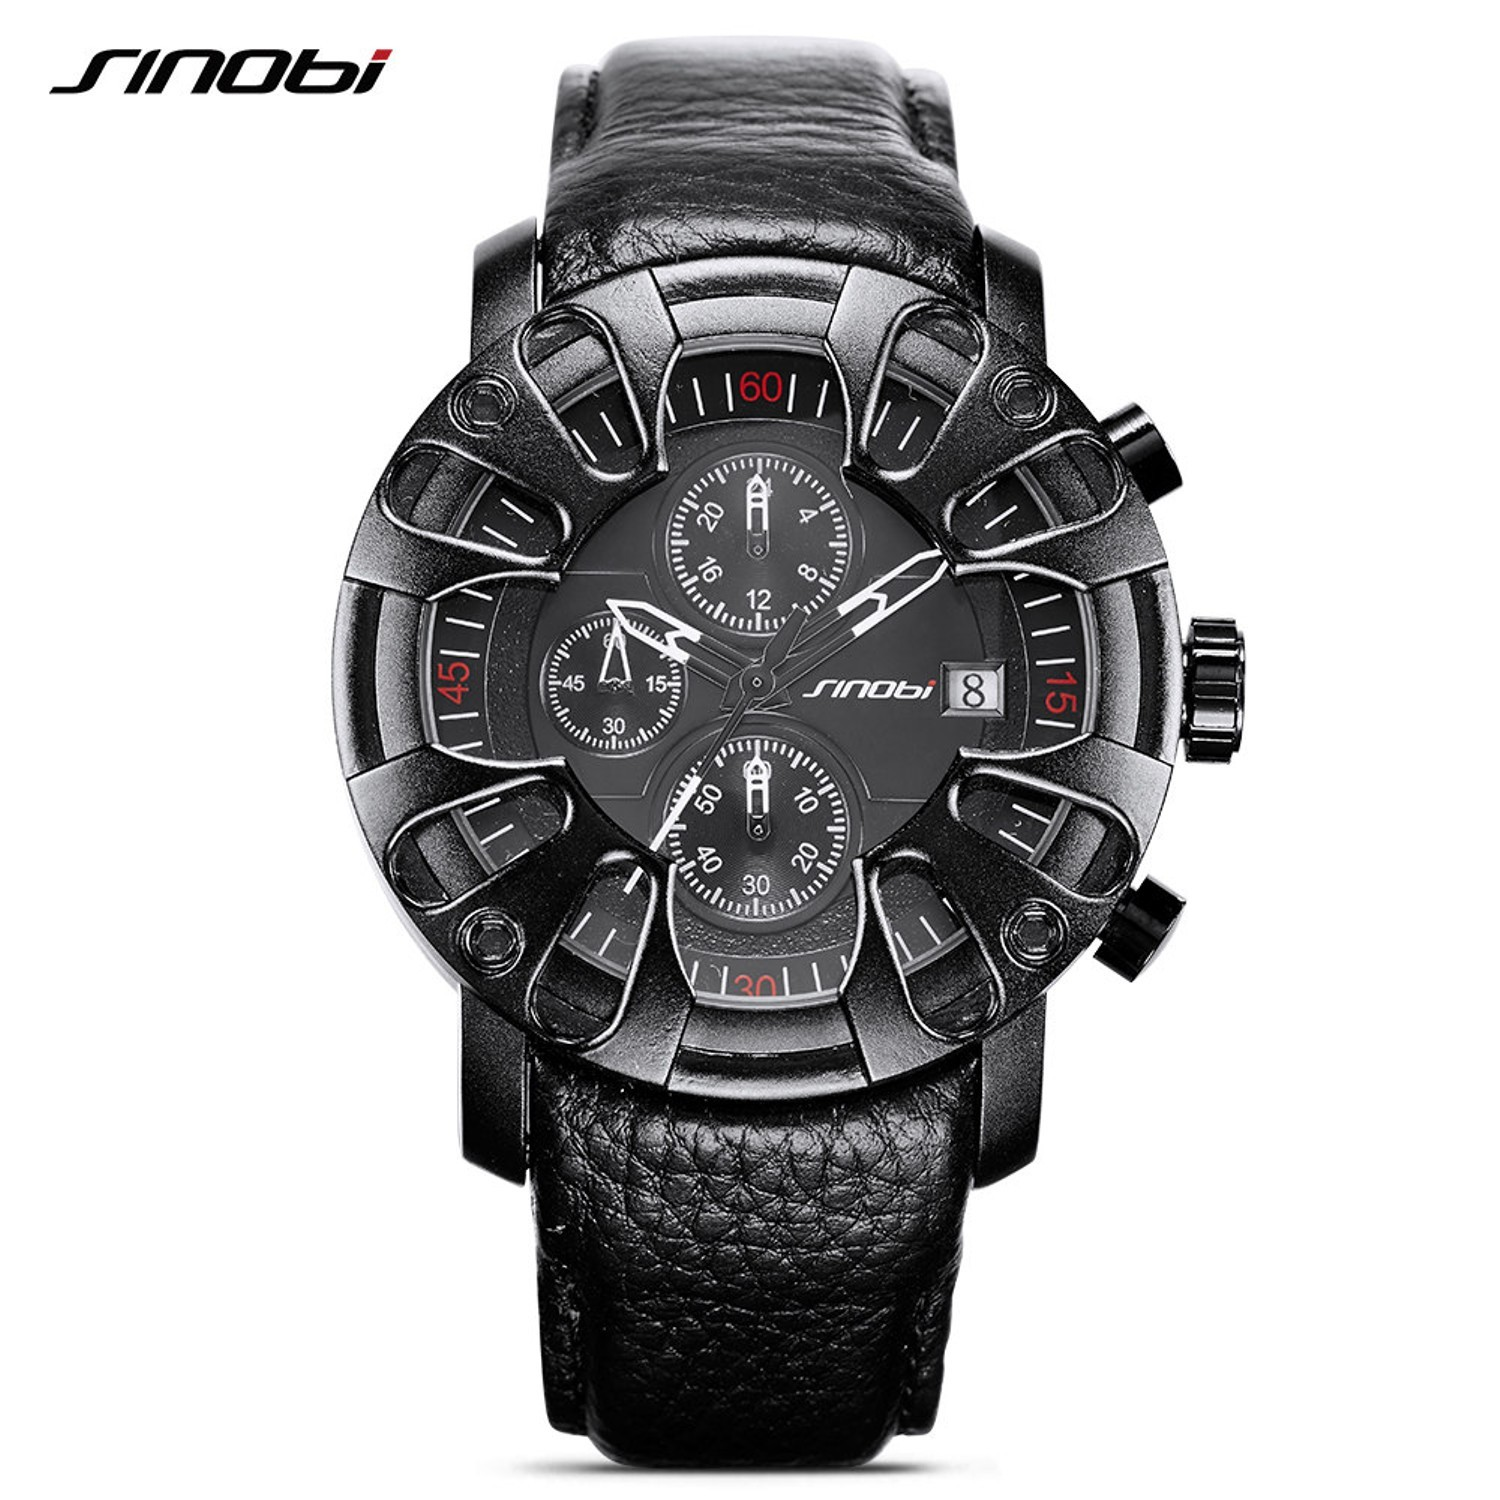 SINOBI-S9760-Watch-for-Men-Sports-Quartz-S-Shock-Watches-With-Soft-Leather-Straps-Eagle-Claw_1500x1500_STRETCH_blackcase.jpg